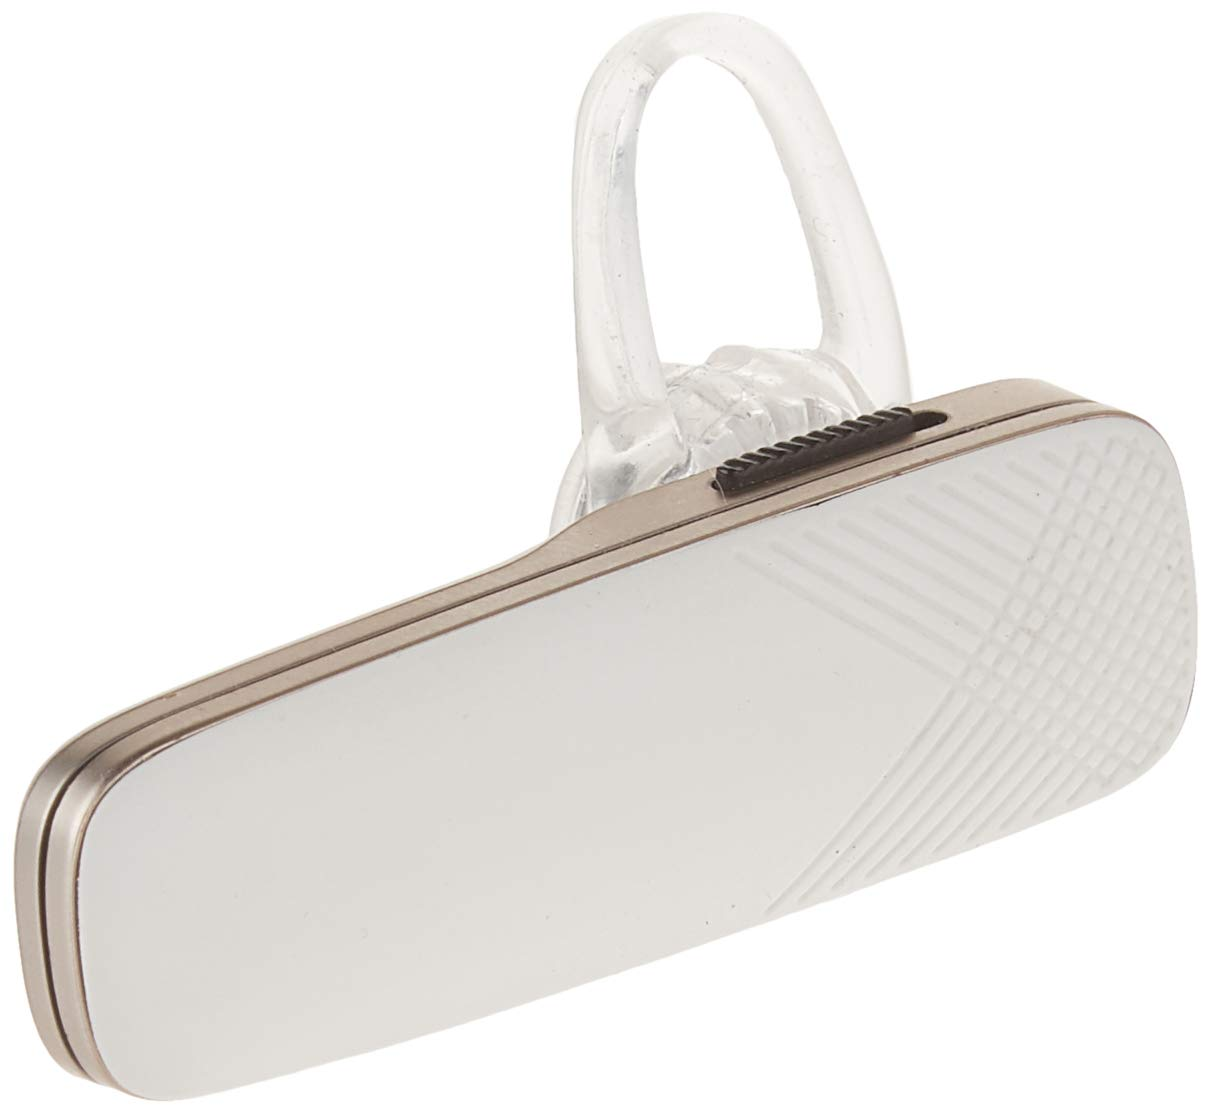 57c27b865af Plantronics Explorer 500 Bluetooth Headset White/Gold (20362203):  Amazon.ca: Cell Phones & Accessories